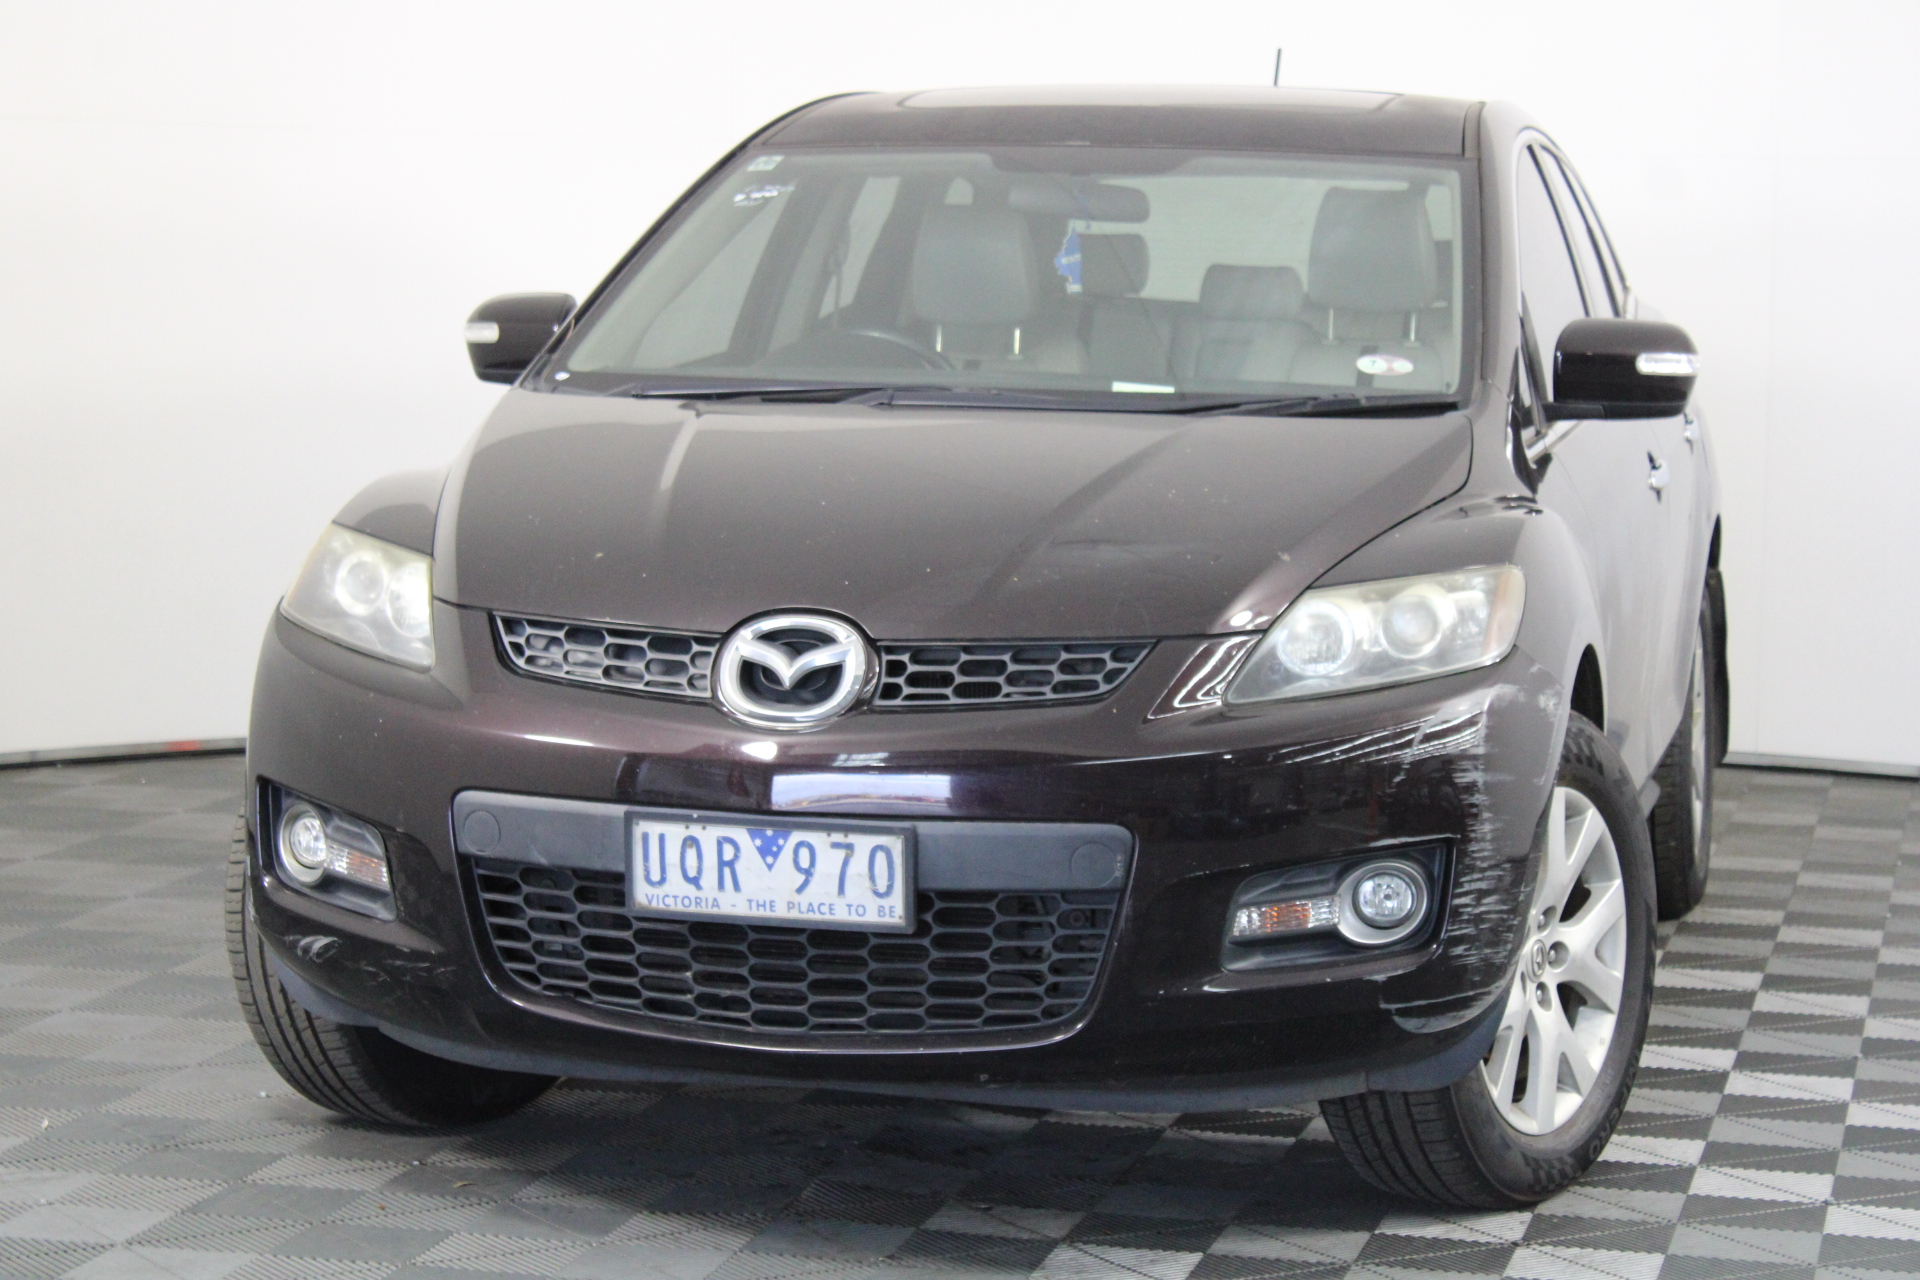 2007 Mazda CX-7 Luxury (4x4) Automatic Wagon